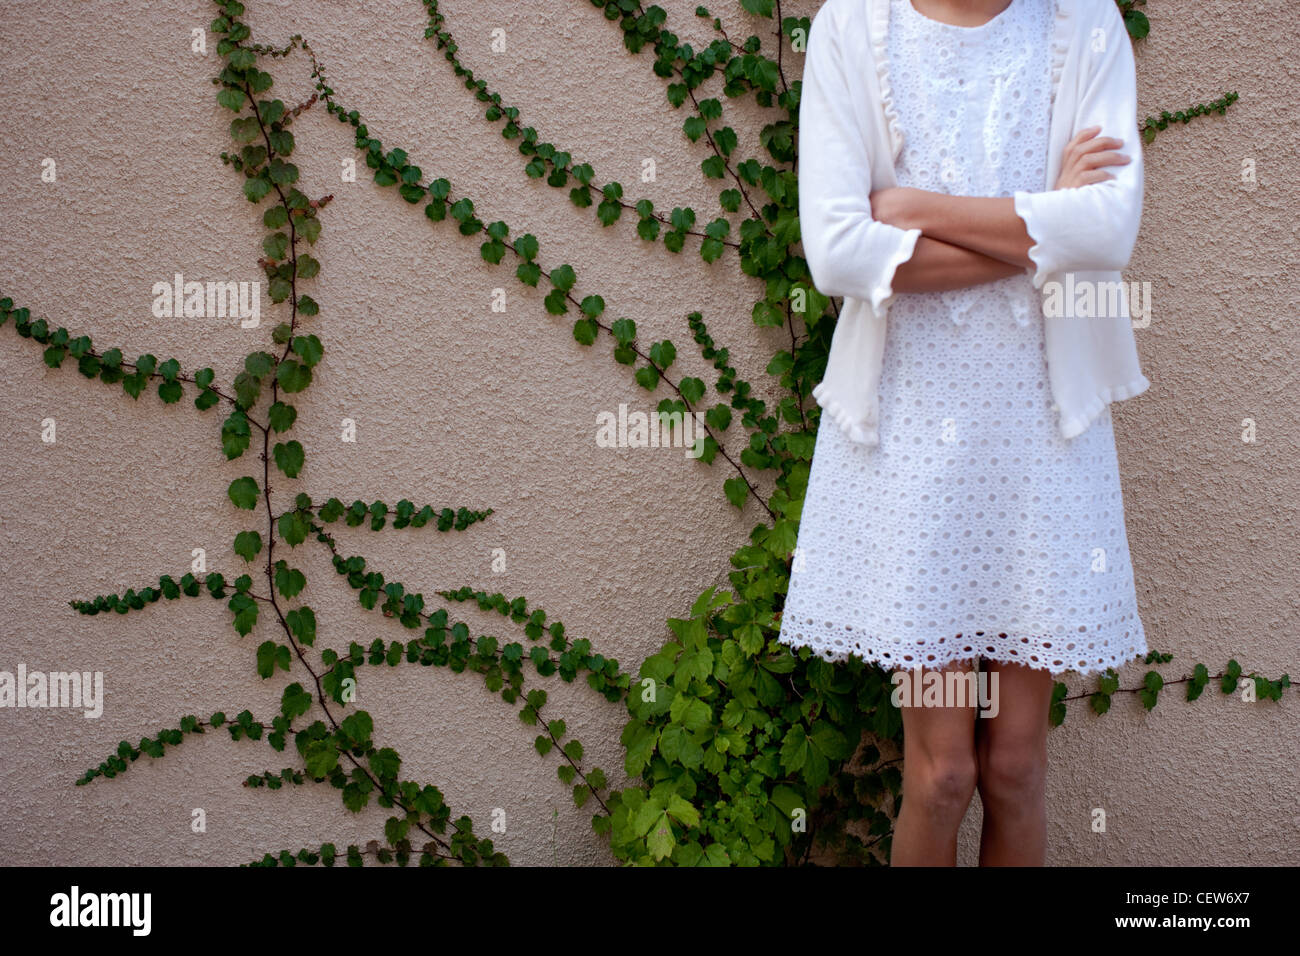 Girl dressed in white in front of climbing vines. - Stock Image